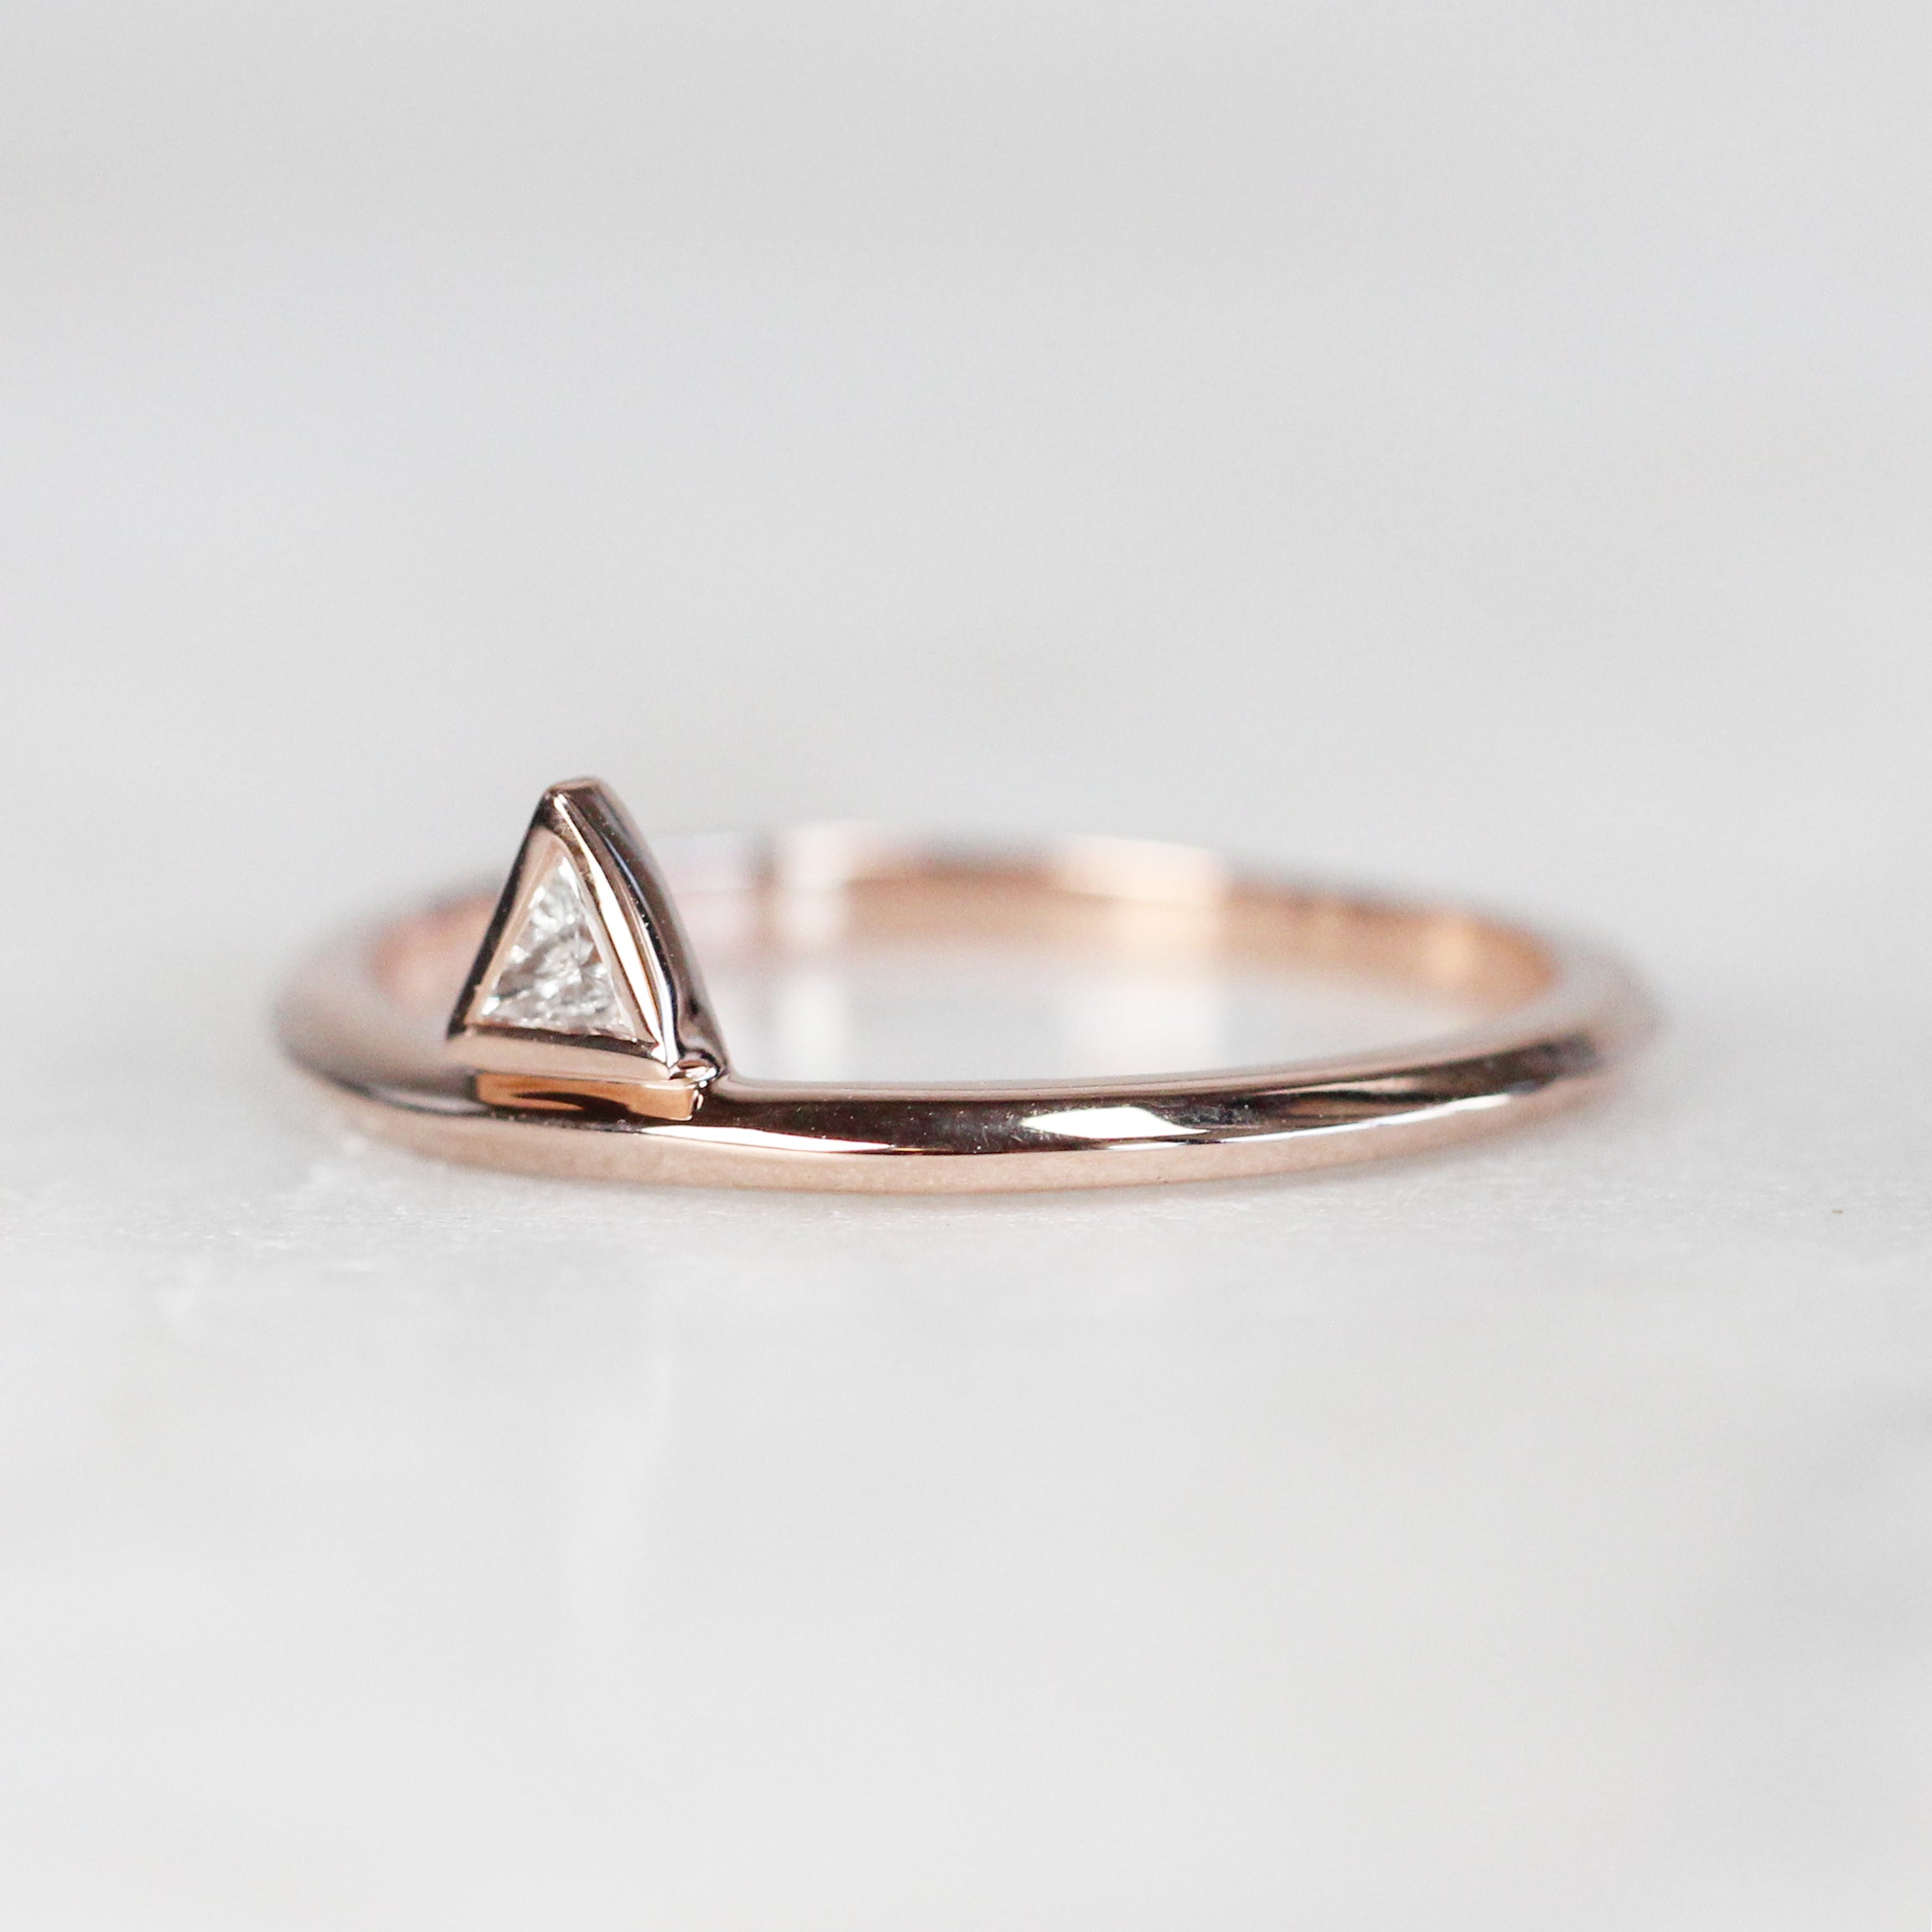 Minimal Diamond Triangle Stacking Ring in 14k Rose Gold - Ready to Size and Ship - Celestial Diamonds ® by Midwinter Co.